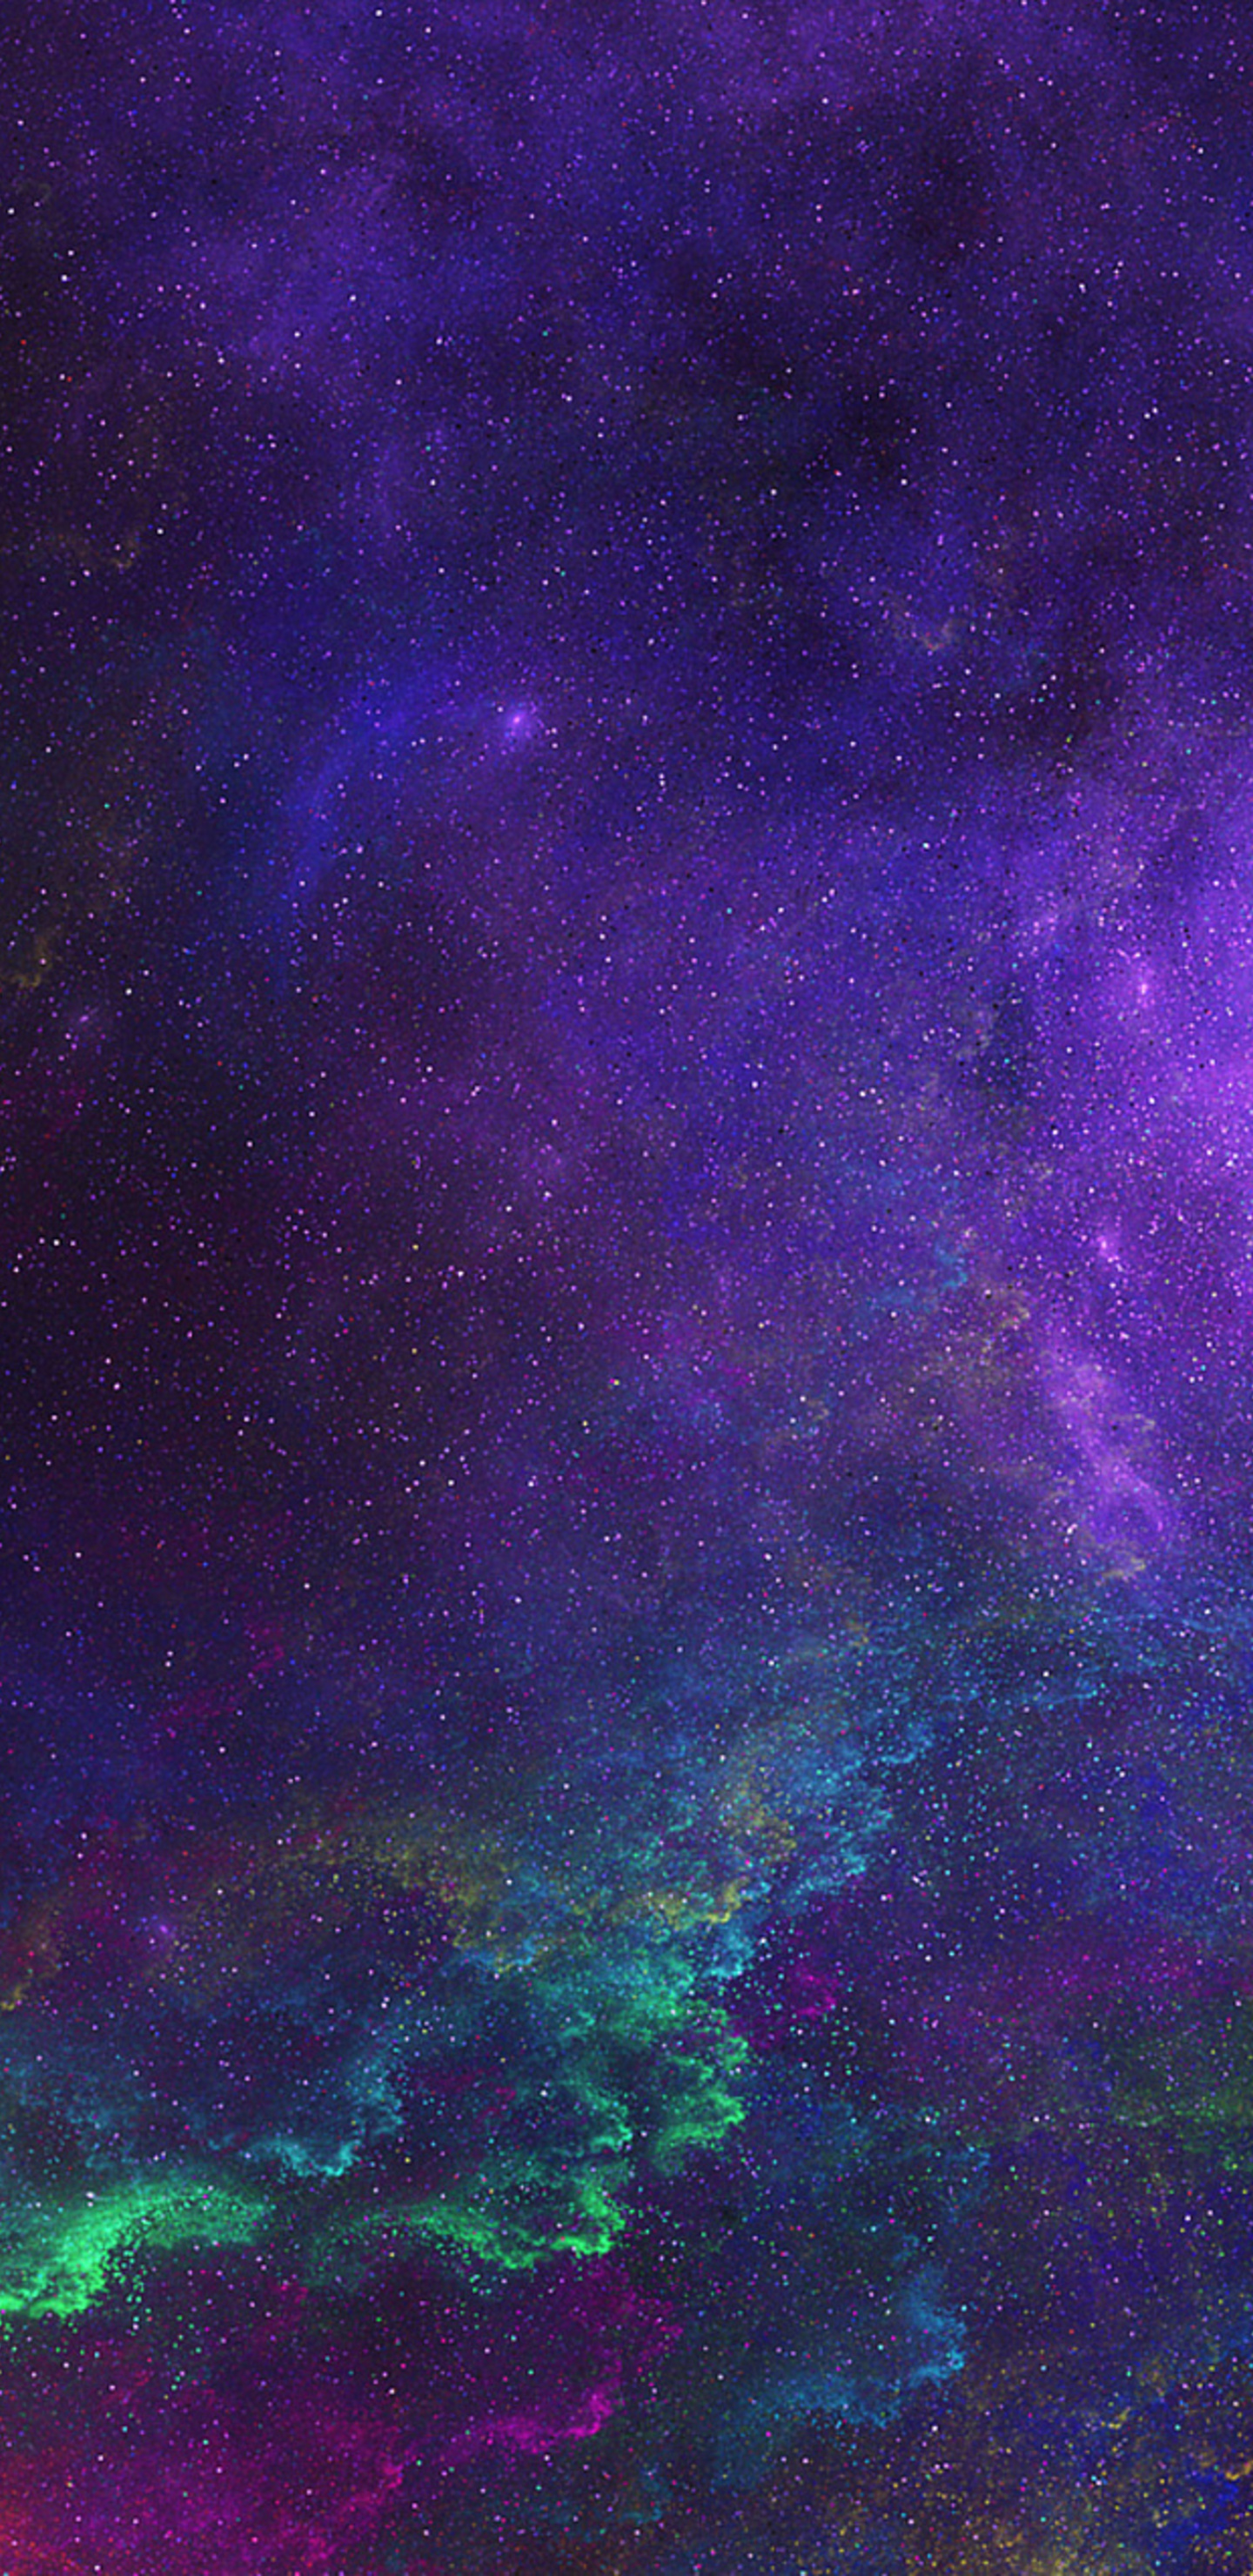 1440x2960 Colorful Space Samsung Galaxy Note 9,8, S9,S8,S8